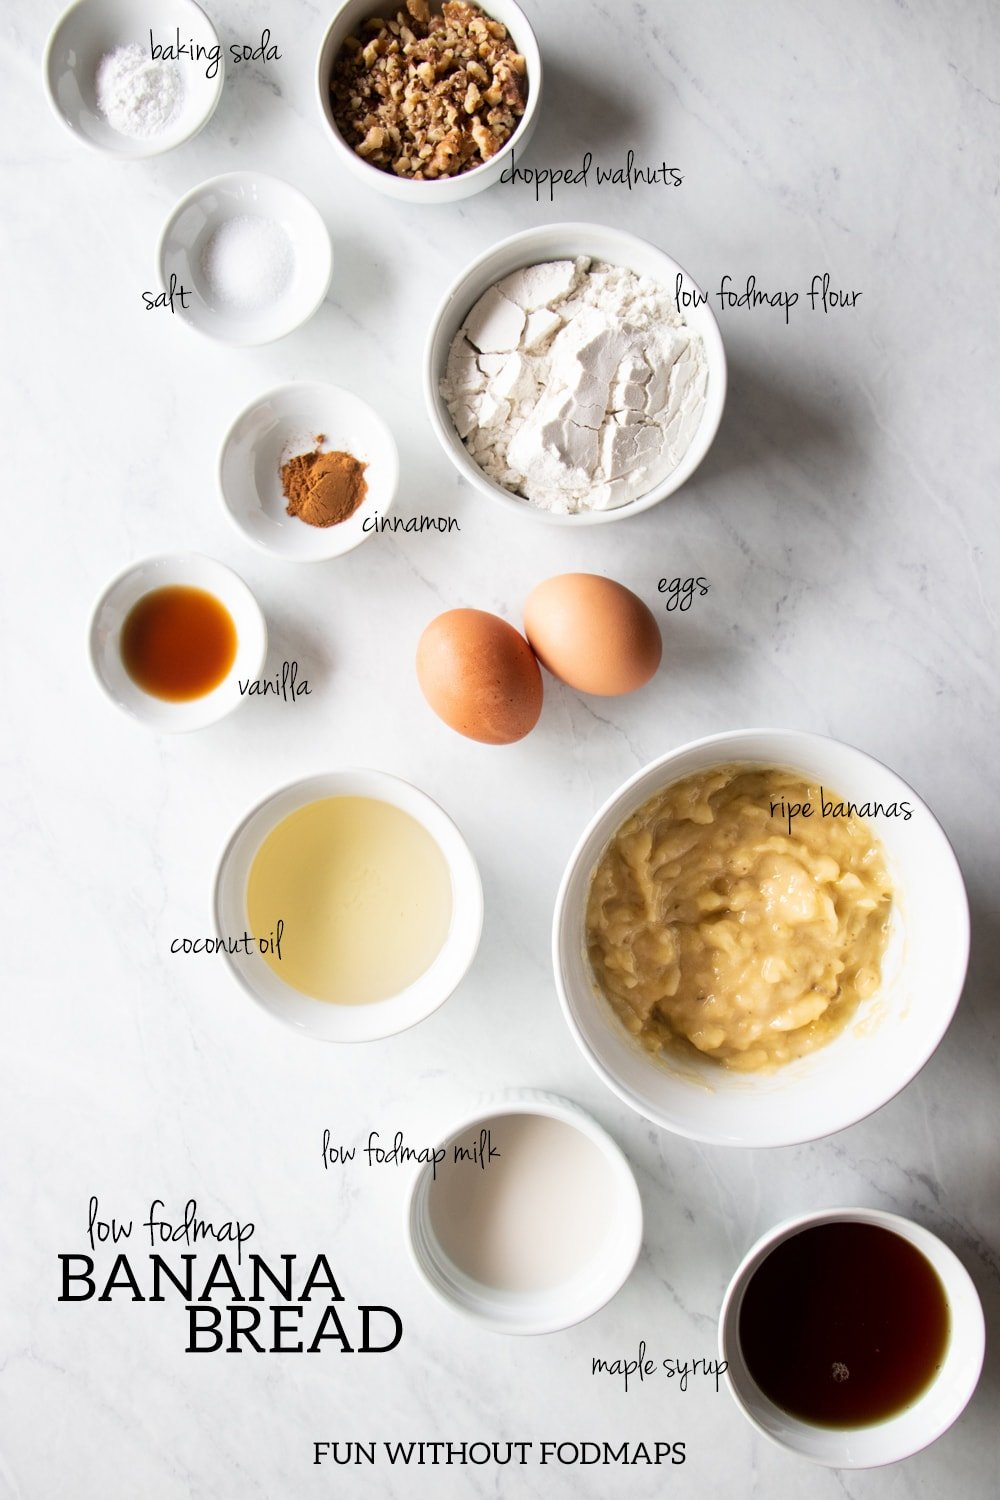 White dishes filled with the ingredients needed for low FODMAP banana bread